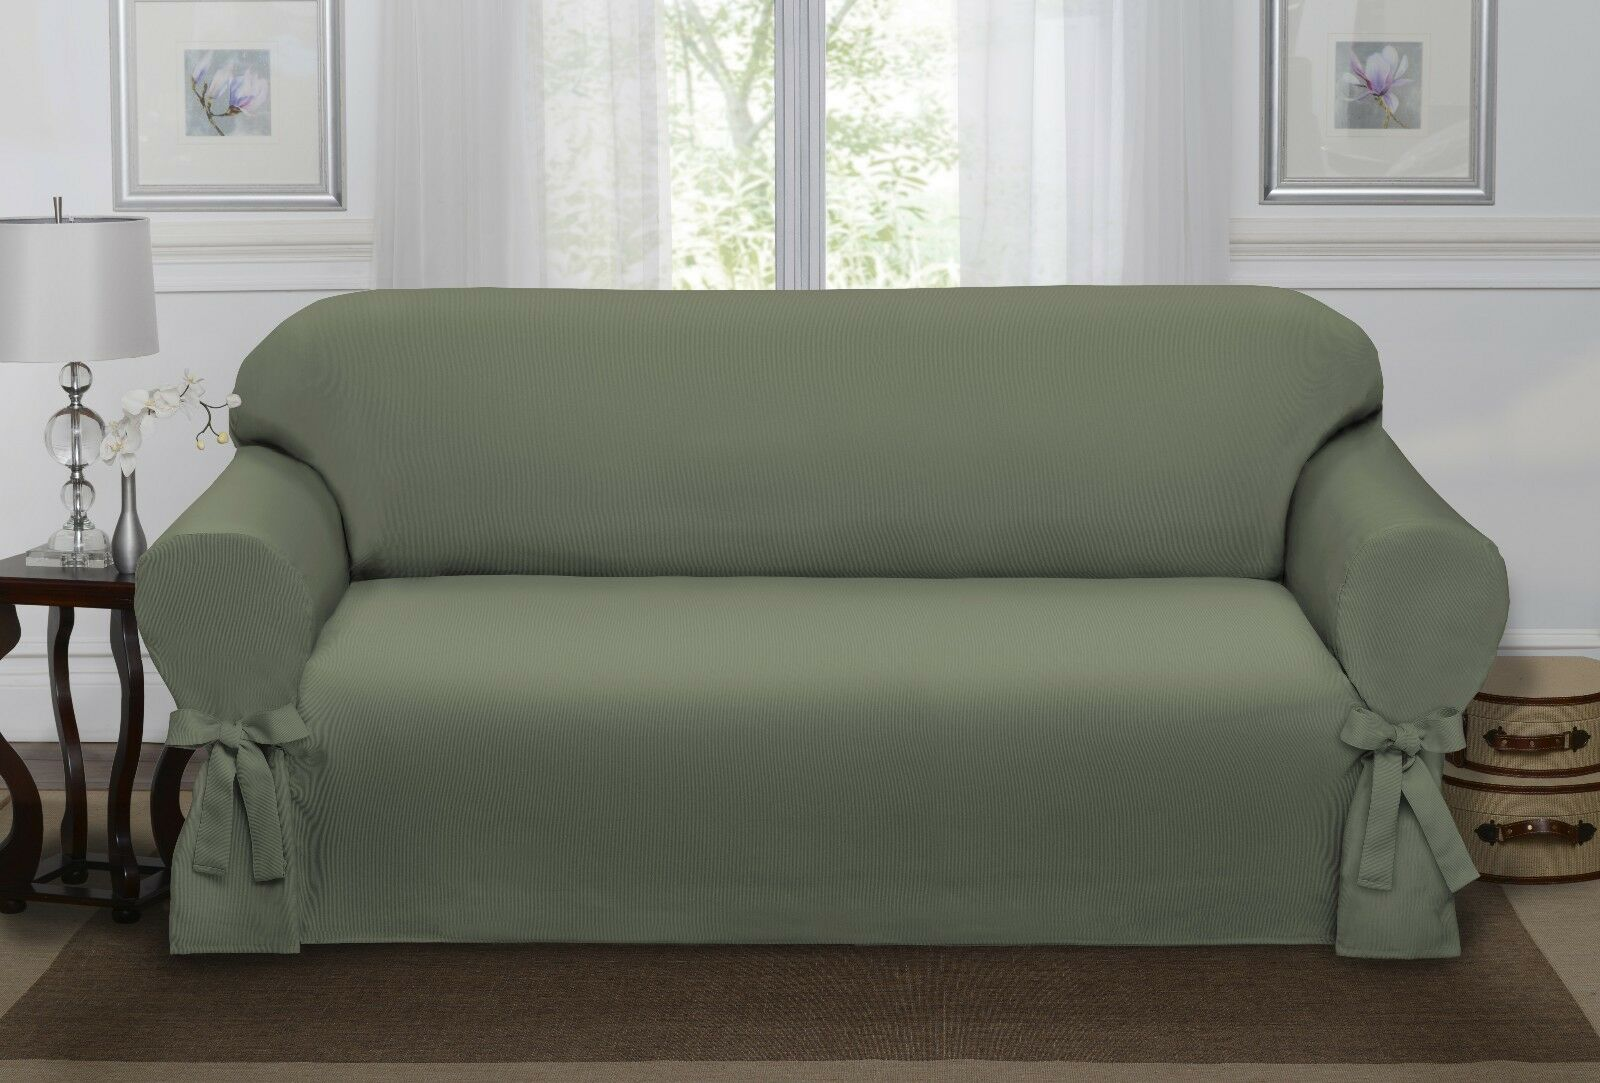 sage green loden lucerne sofa slipcover couch cover sofa chair 4 colors ebay. Black Bedroom Furniture Sets. Home Design Ideas